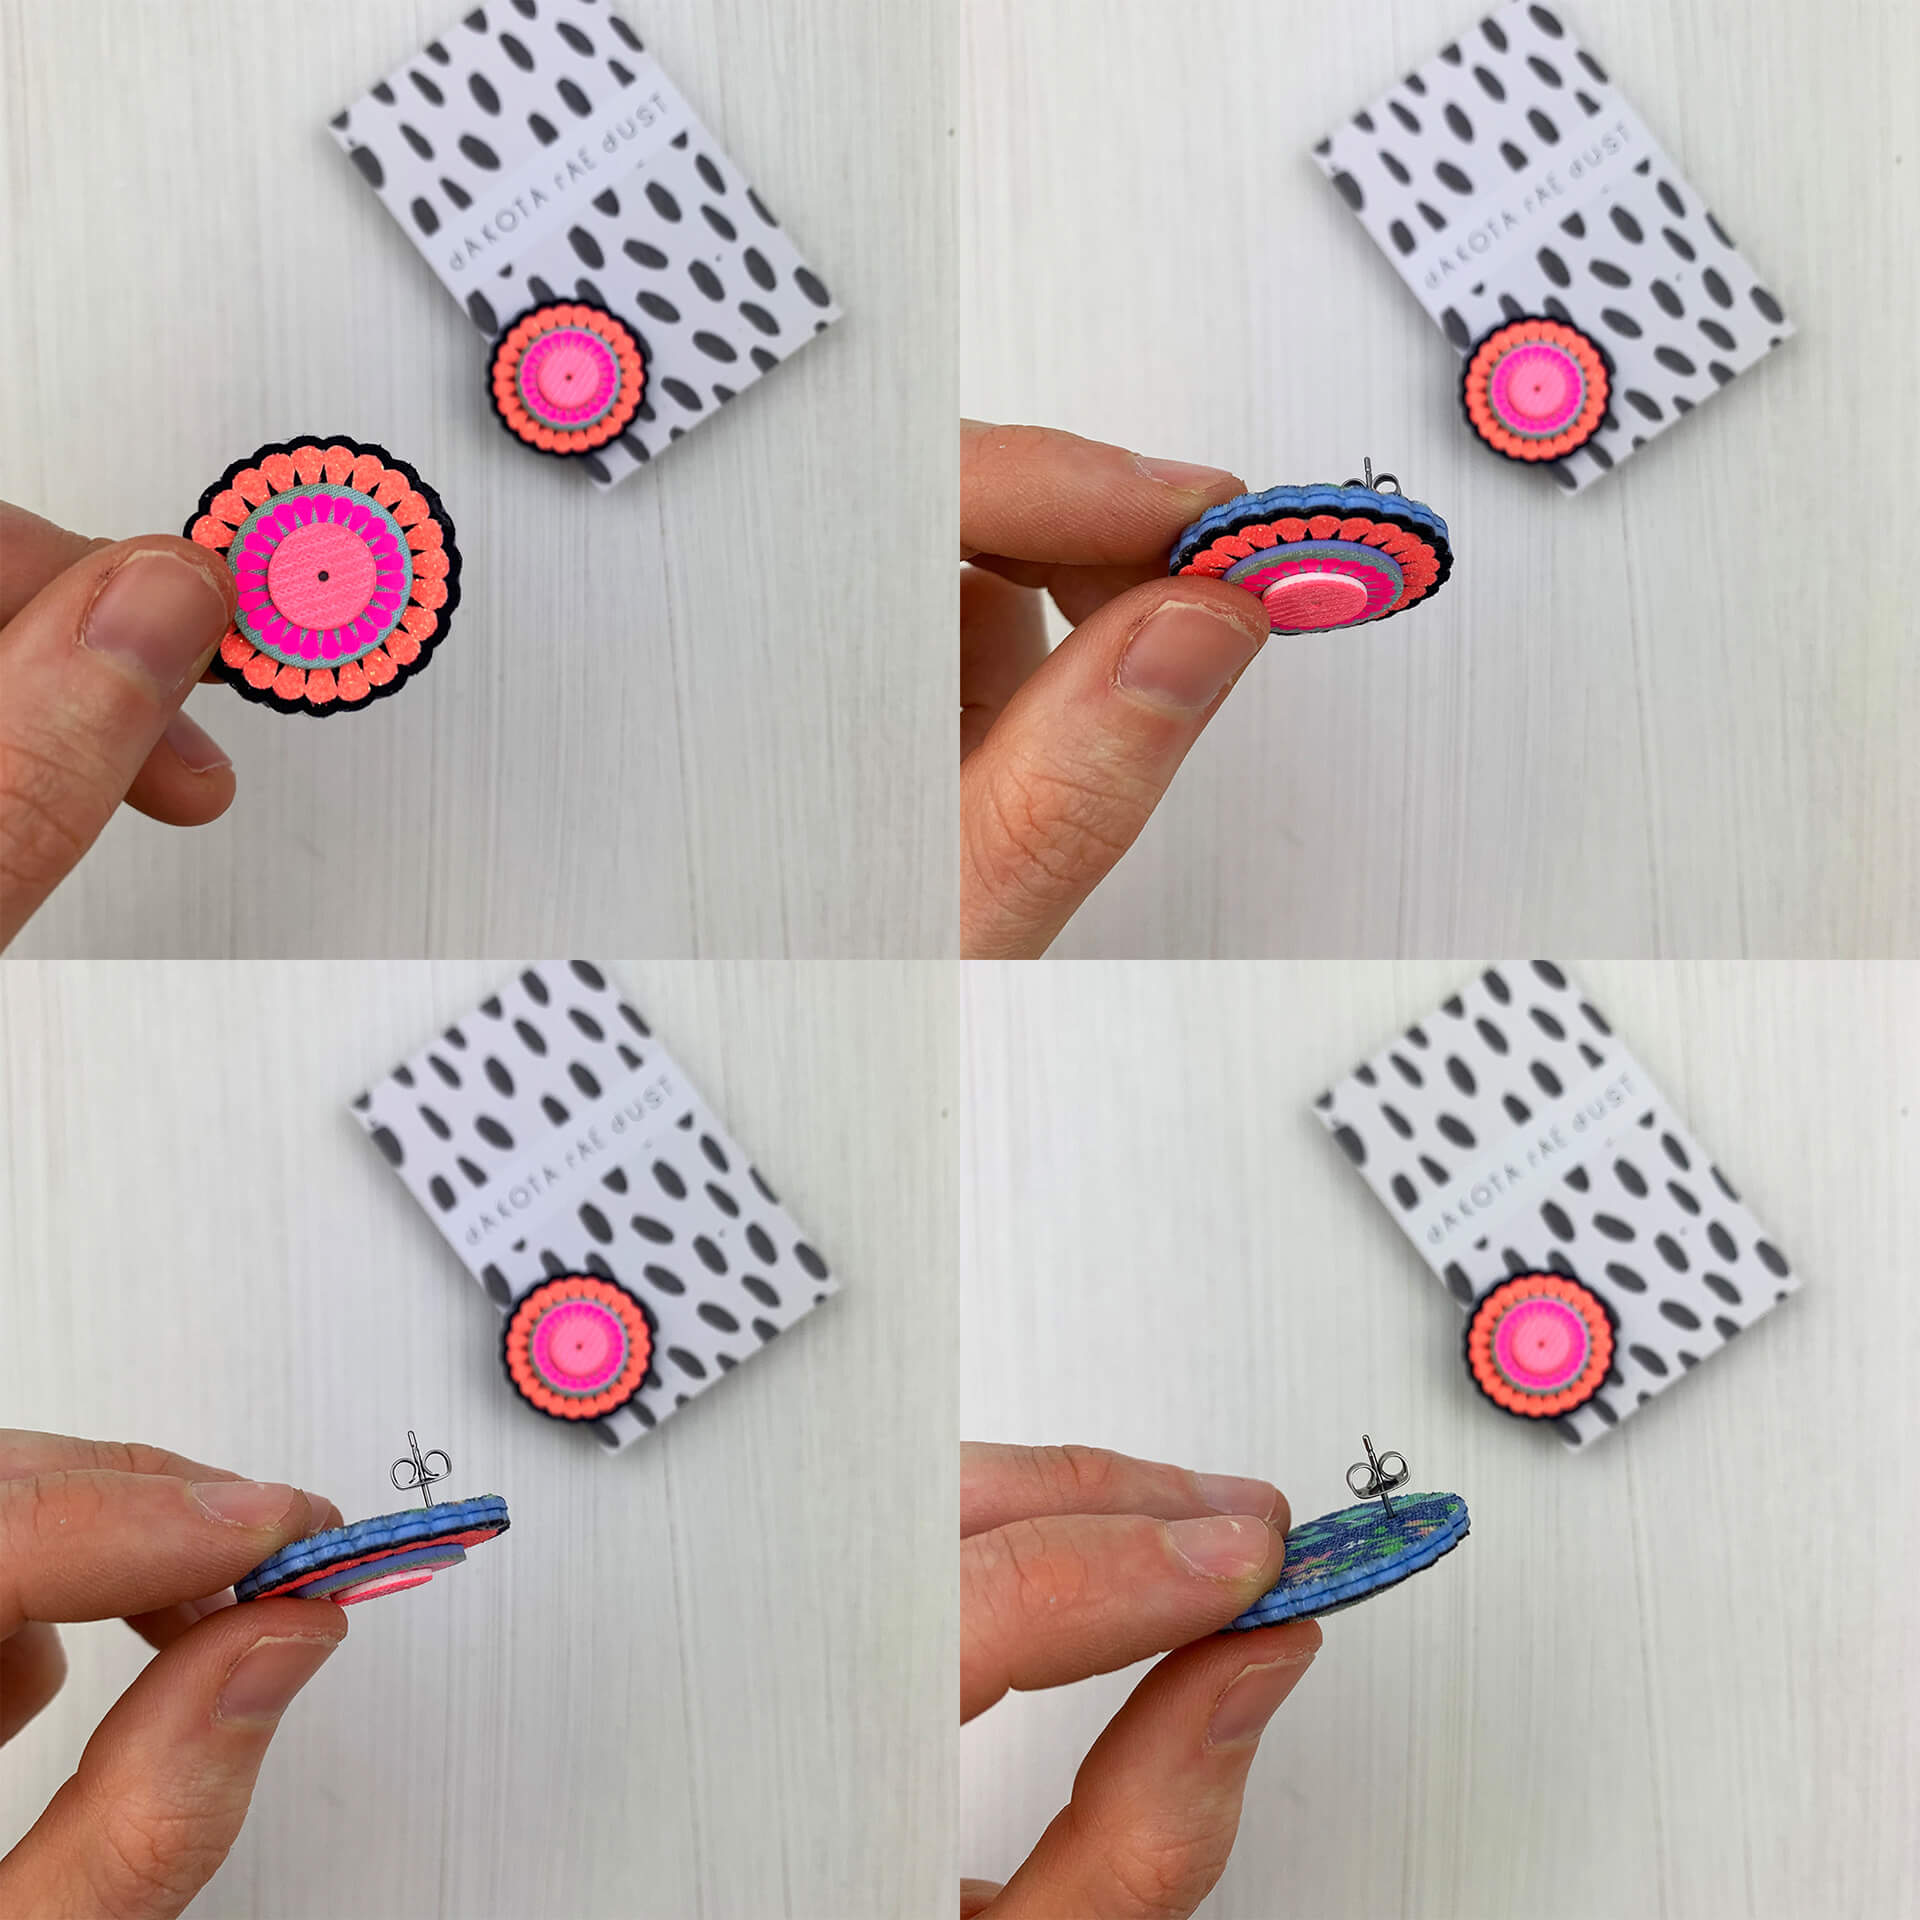 Four images show the same pink fabric stud earring being turned on it's side to show the reverse side, backed with vintage fabric.